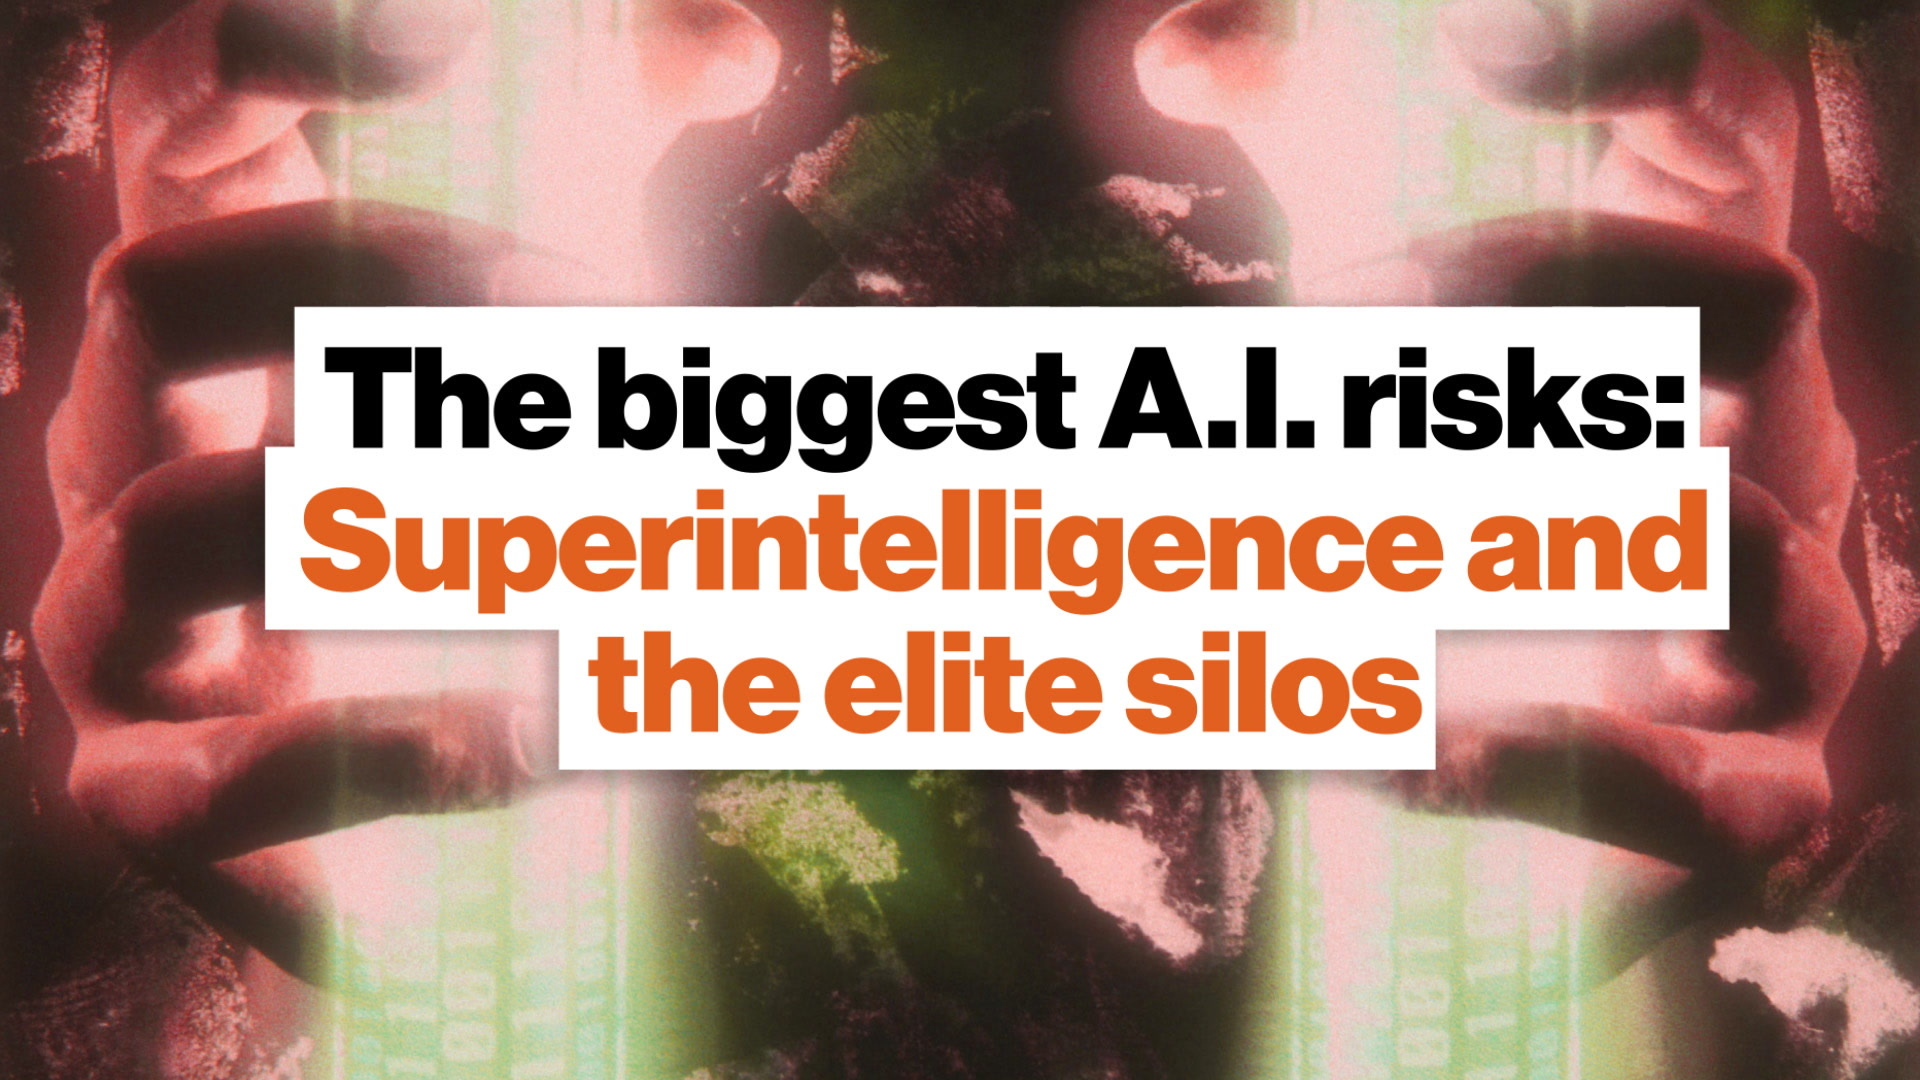 The biggest A.I. risks: Superintelligence and the elite silos